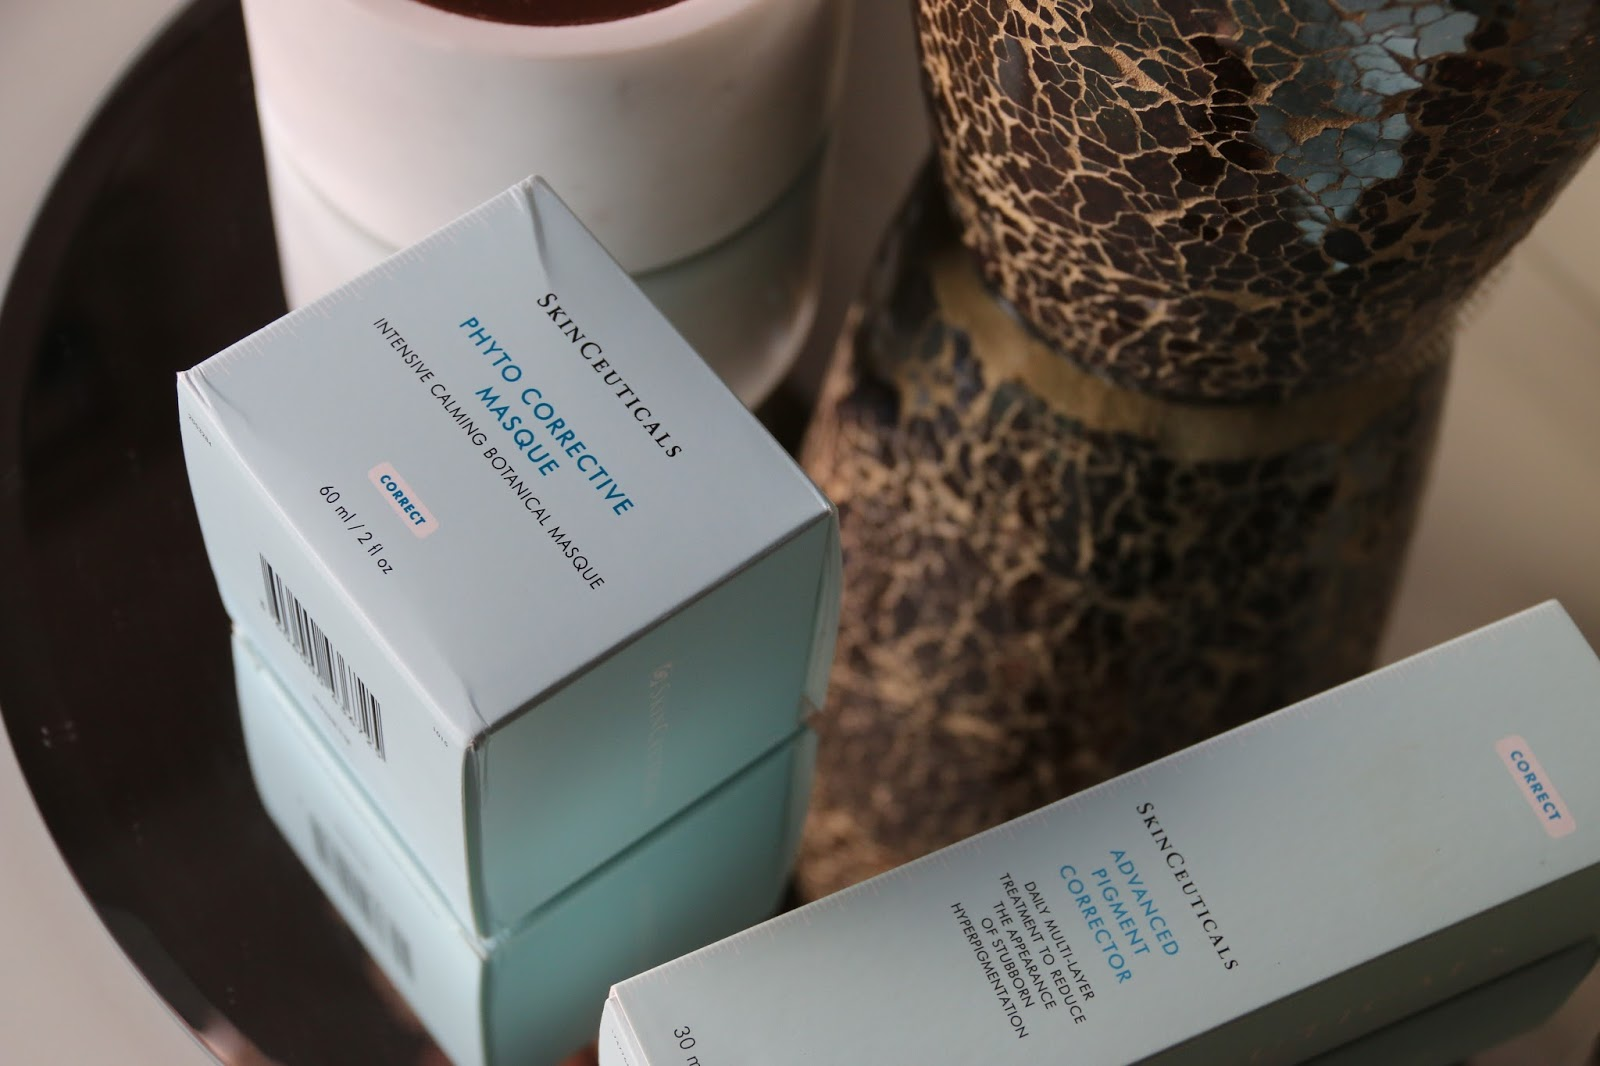 SkinCeuticals Phyto Corrective Masque and SkinCeuticals Advanced Pigment Corrector for hyperpigmentation Review Image